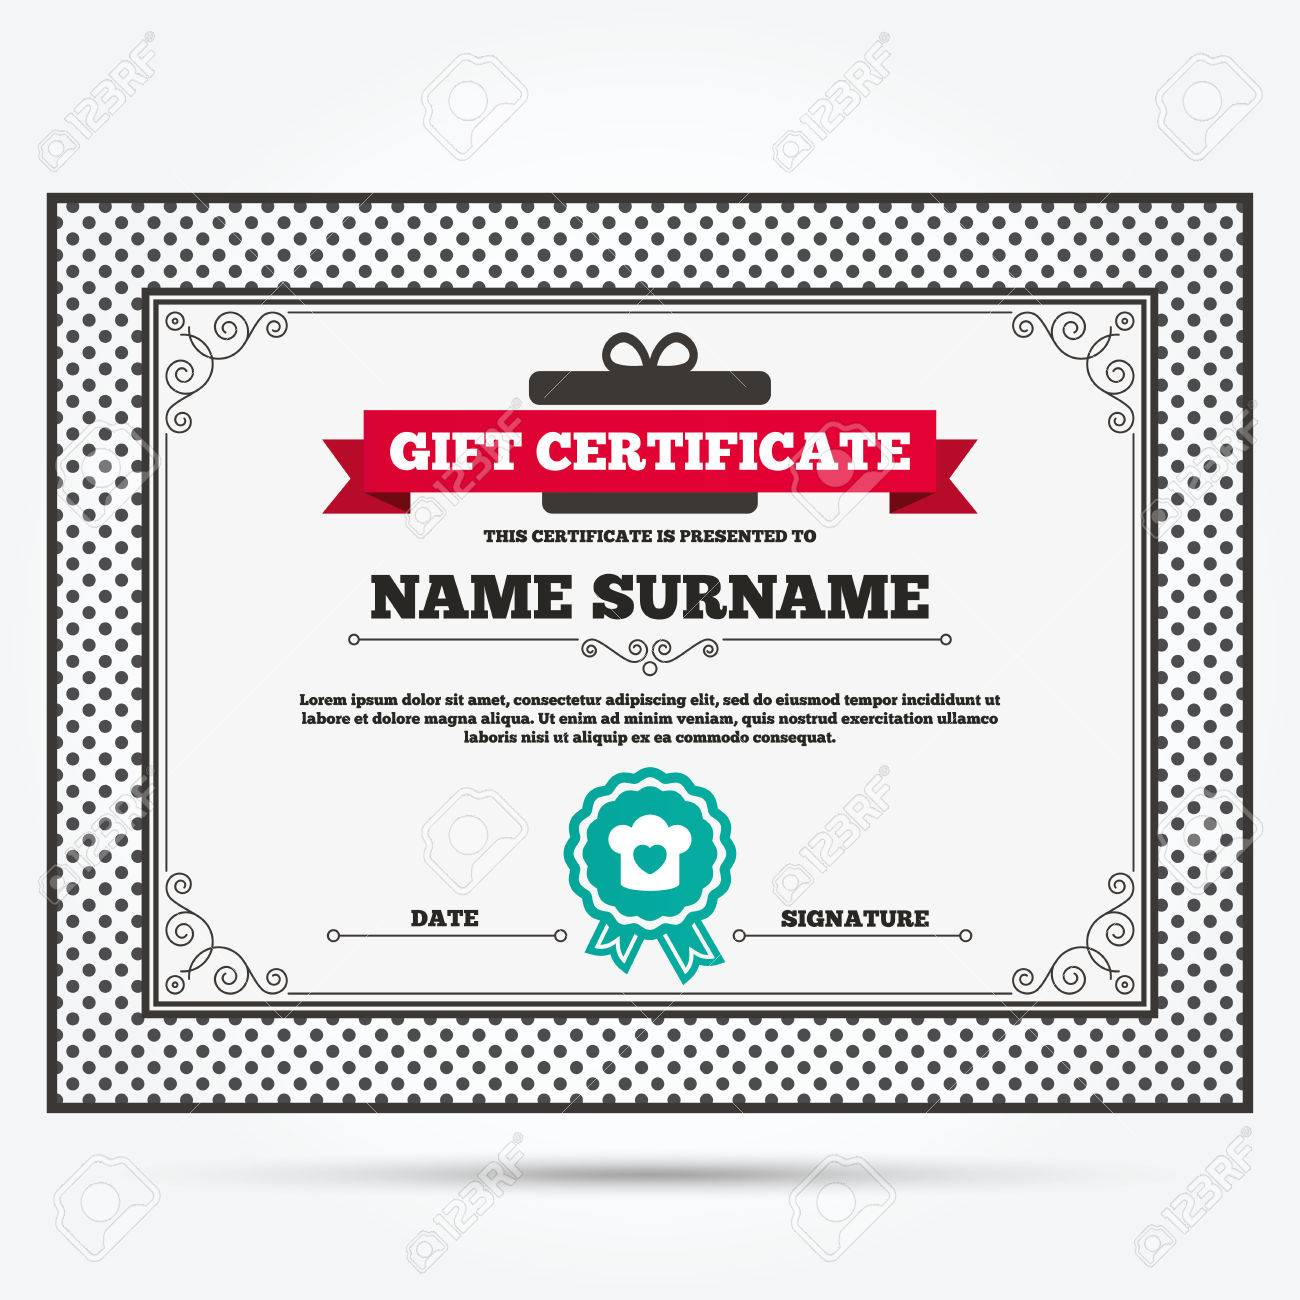 Cooking certificate template kids cooking class certificate design cooking certificate template gift certificate chef hat sign icon cooking symbol cooks hat 51 yelopaper Image collections